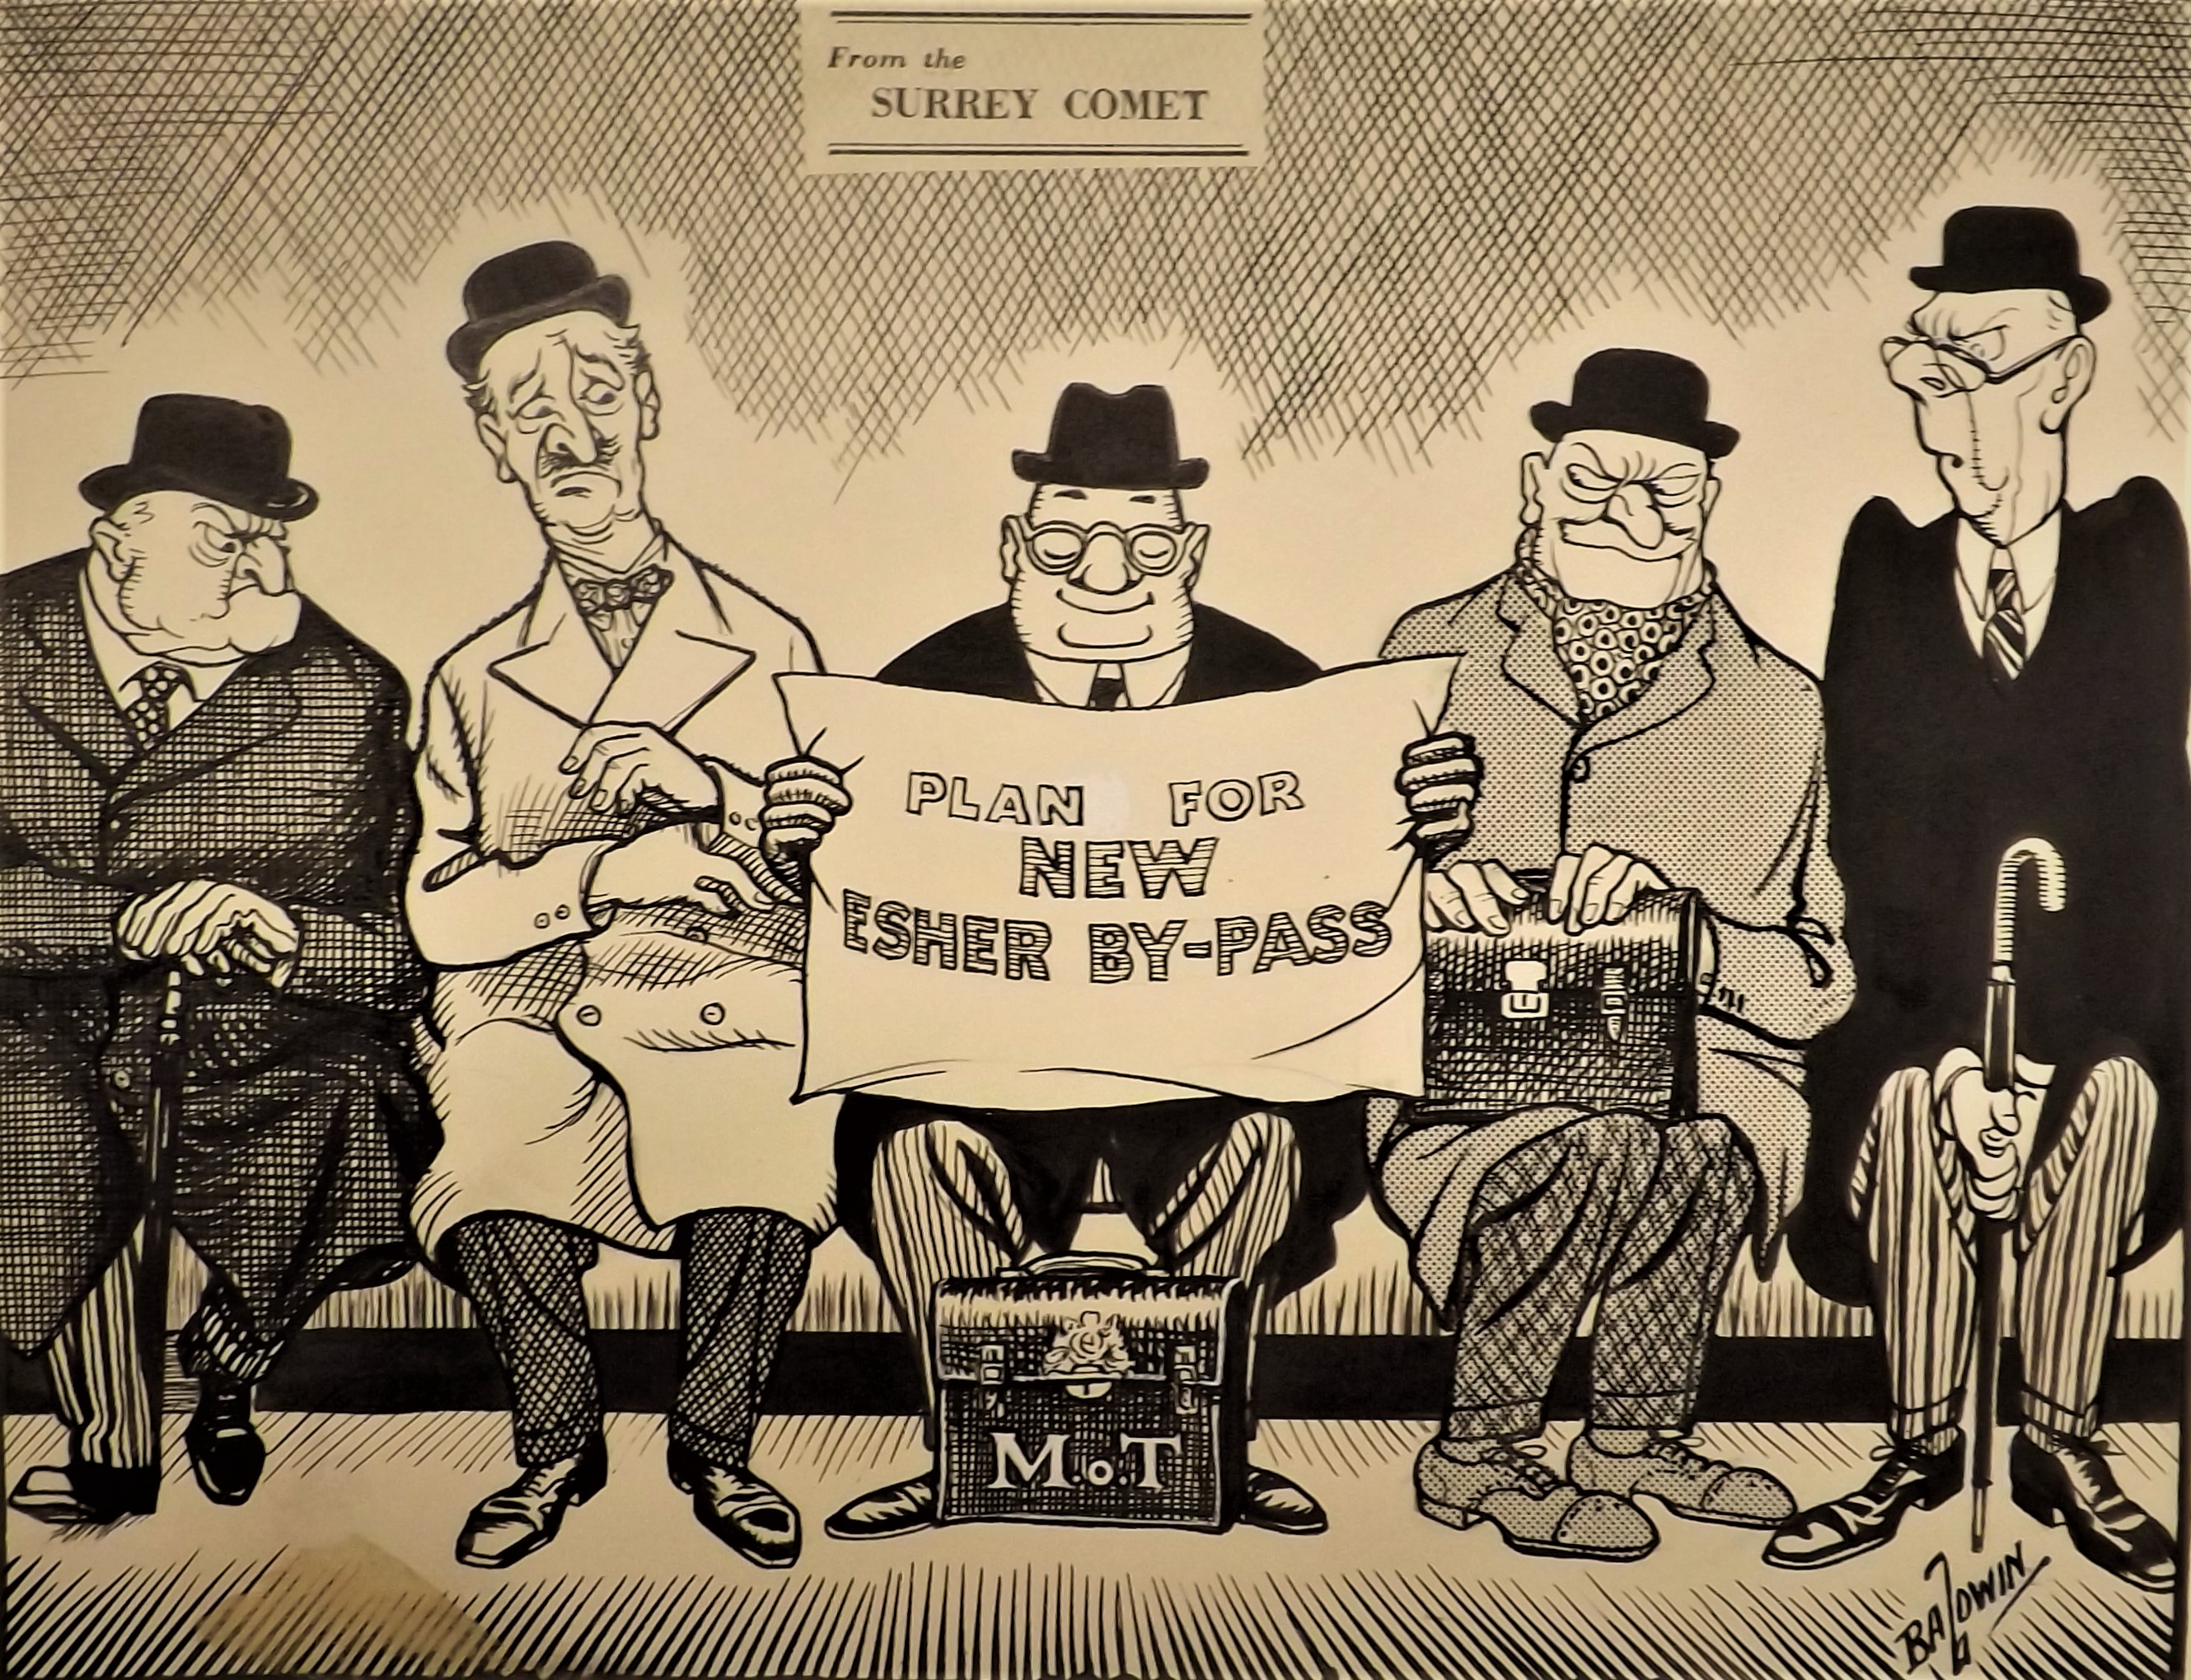 Cartoon from the Surrey Comet criticizing plans for the new Esher Bypass, 1974.